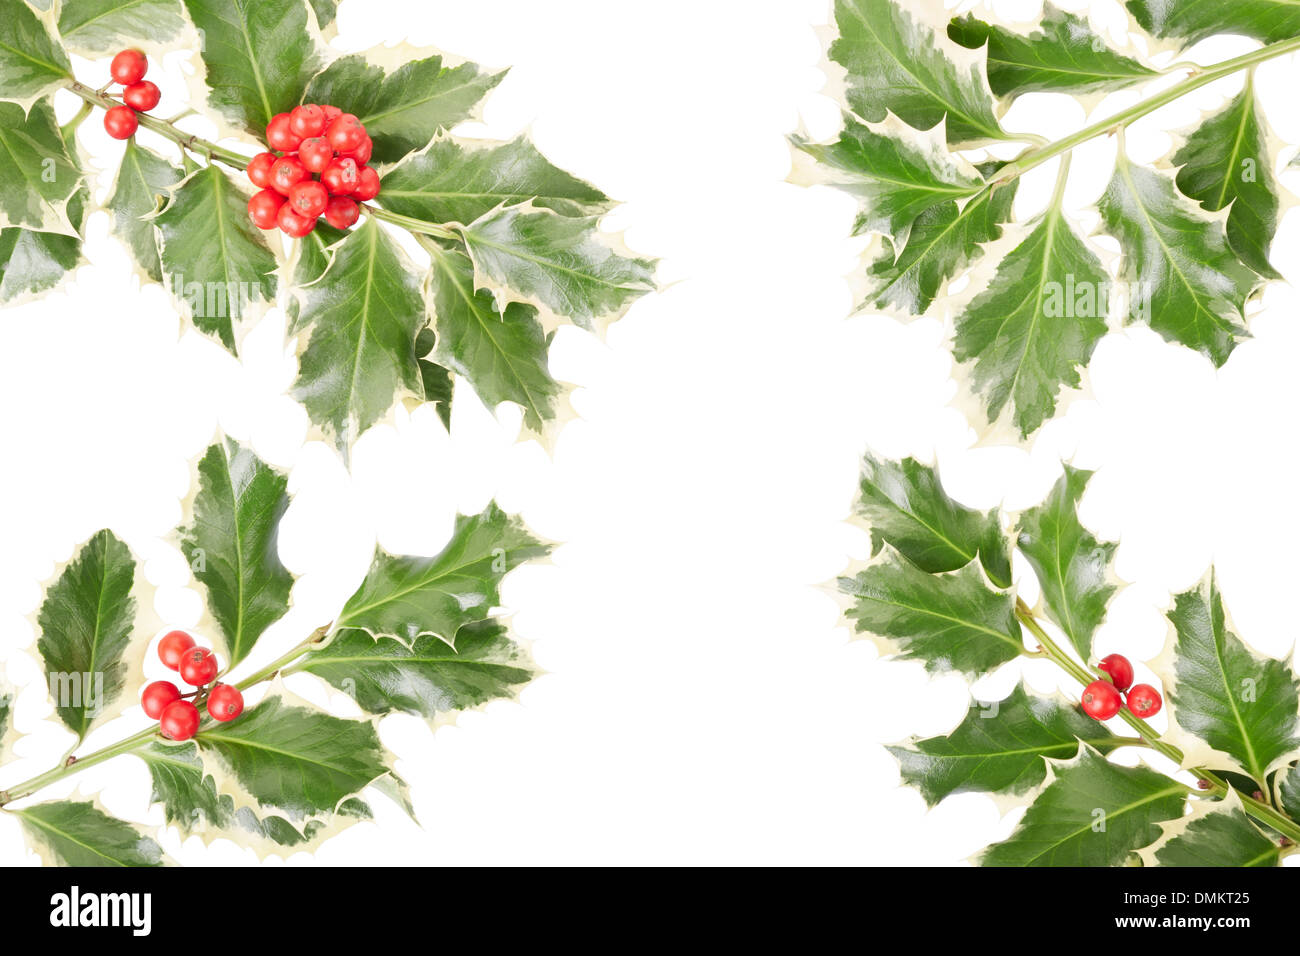 Holly twig border, Christmas decoration - Stock Image